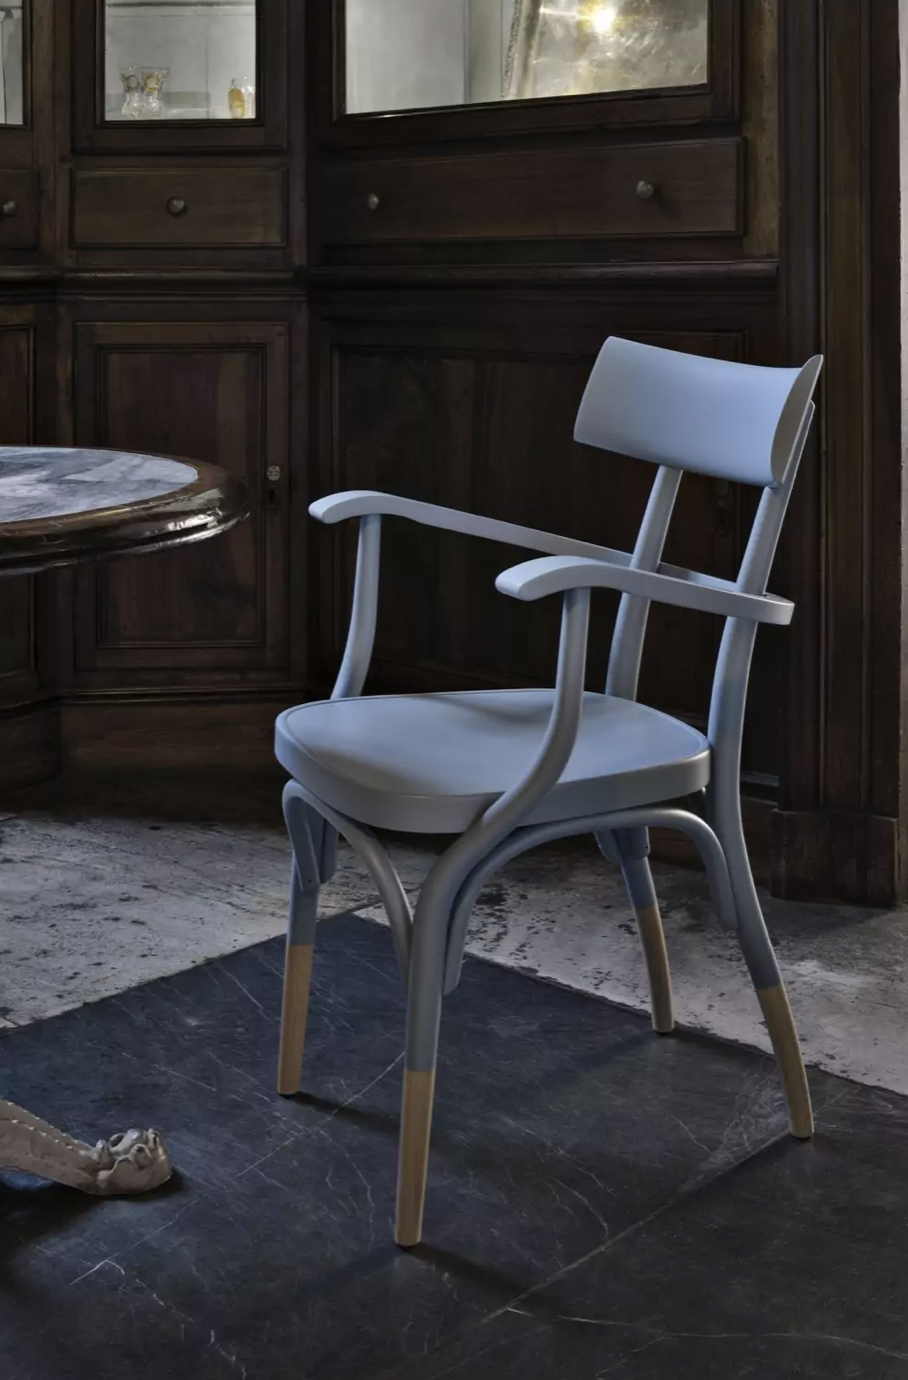 Czech Armchair - Elegant and comfortable, this chair is part of the Czech collection, as a celebration of simple lines and Viennese iconic steam-bent beechwood details. The result is a sophisticated addition to a modern dining room or study. The black lacquered wood of the structure contrasts with the natural finish of the legs and the white fabric of the cushion's upholstery.  | Matter of Stuff